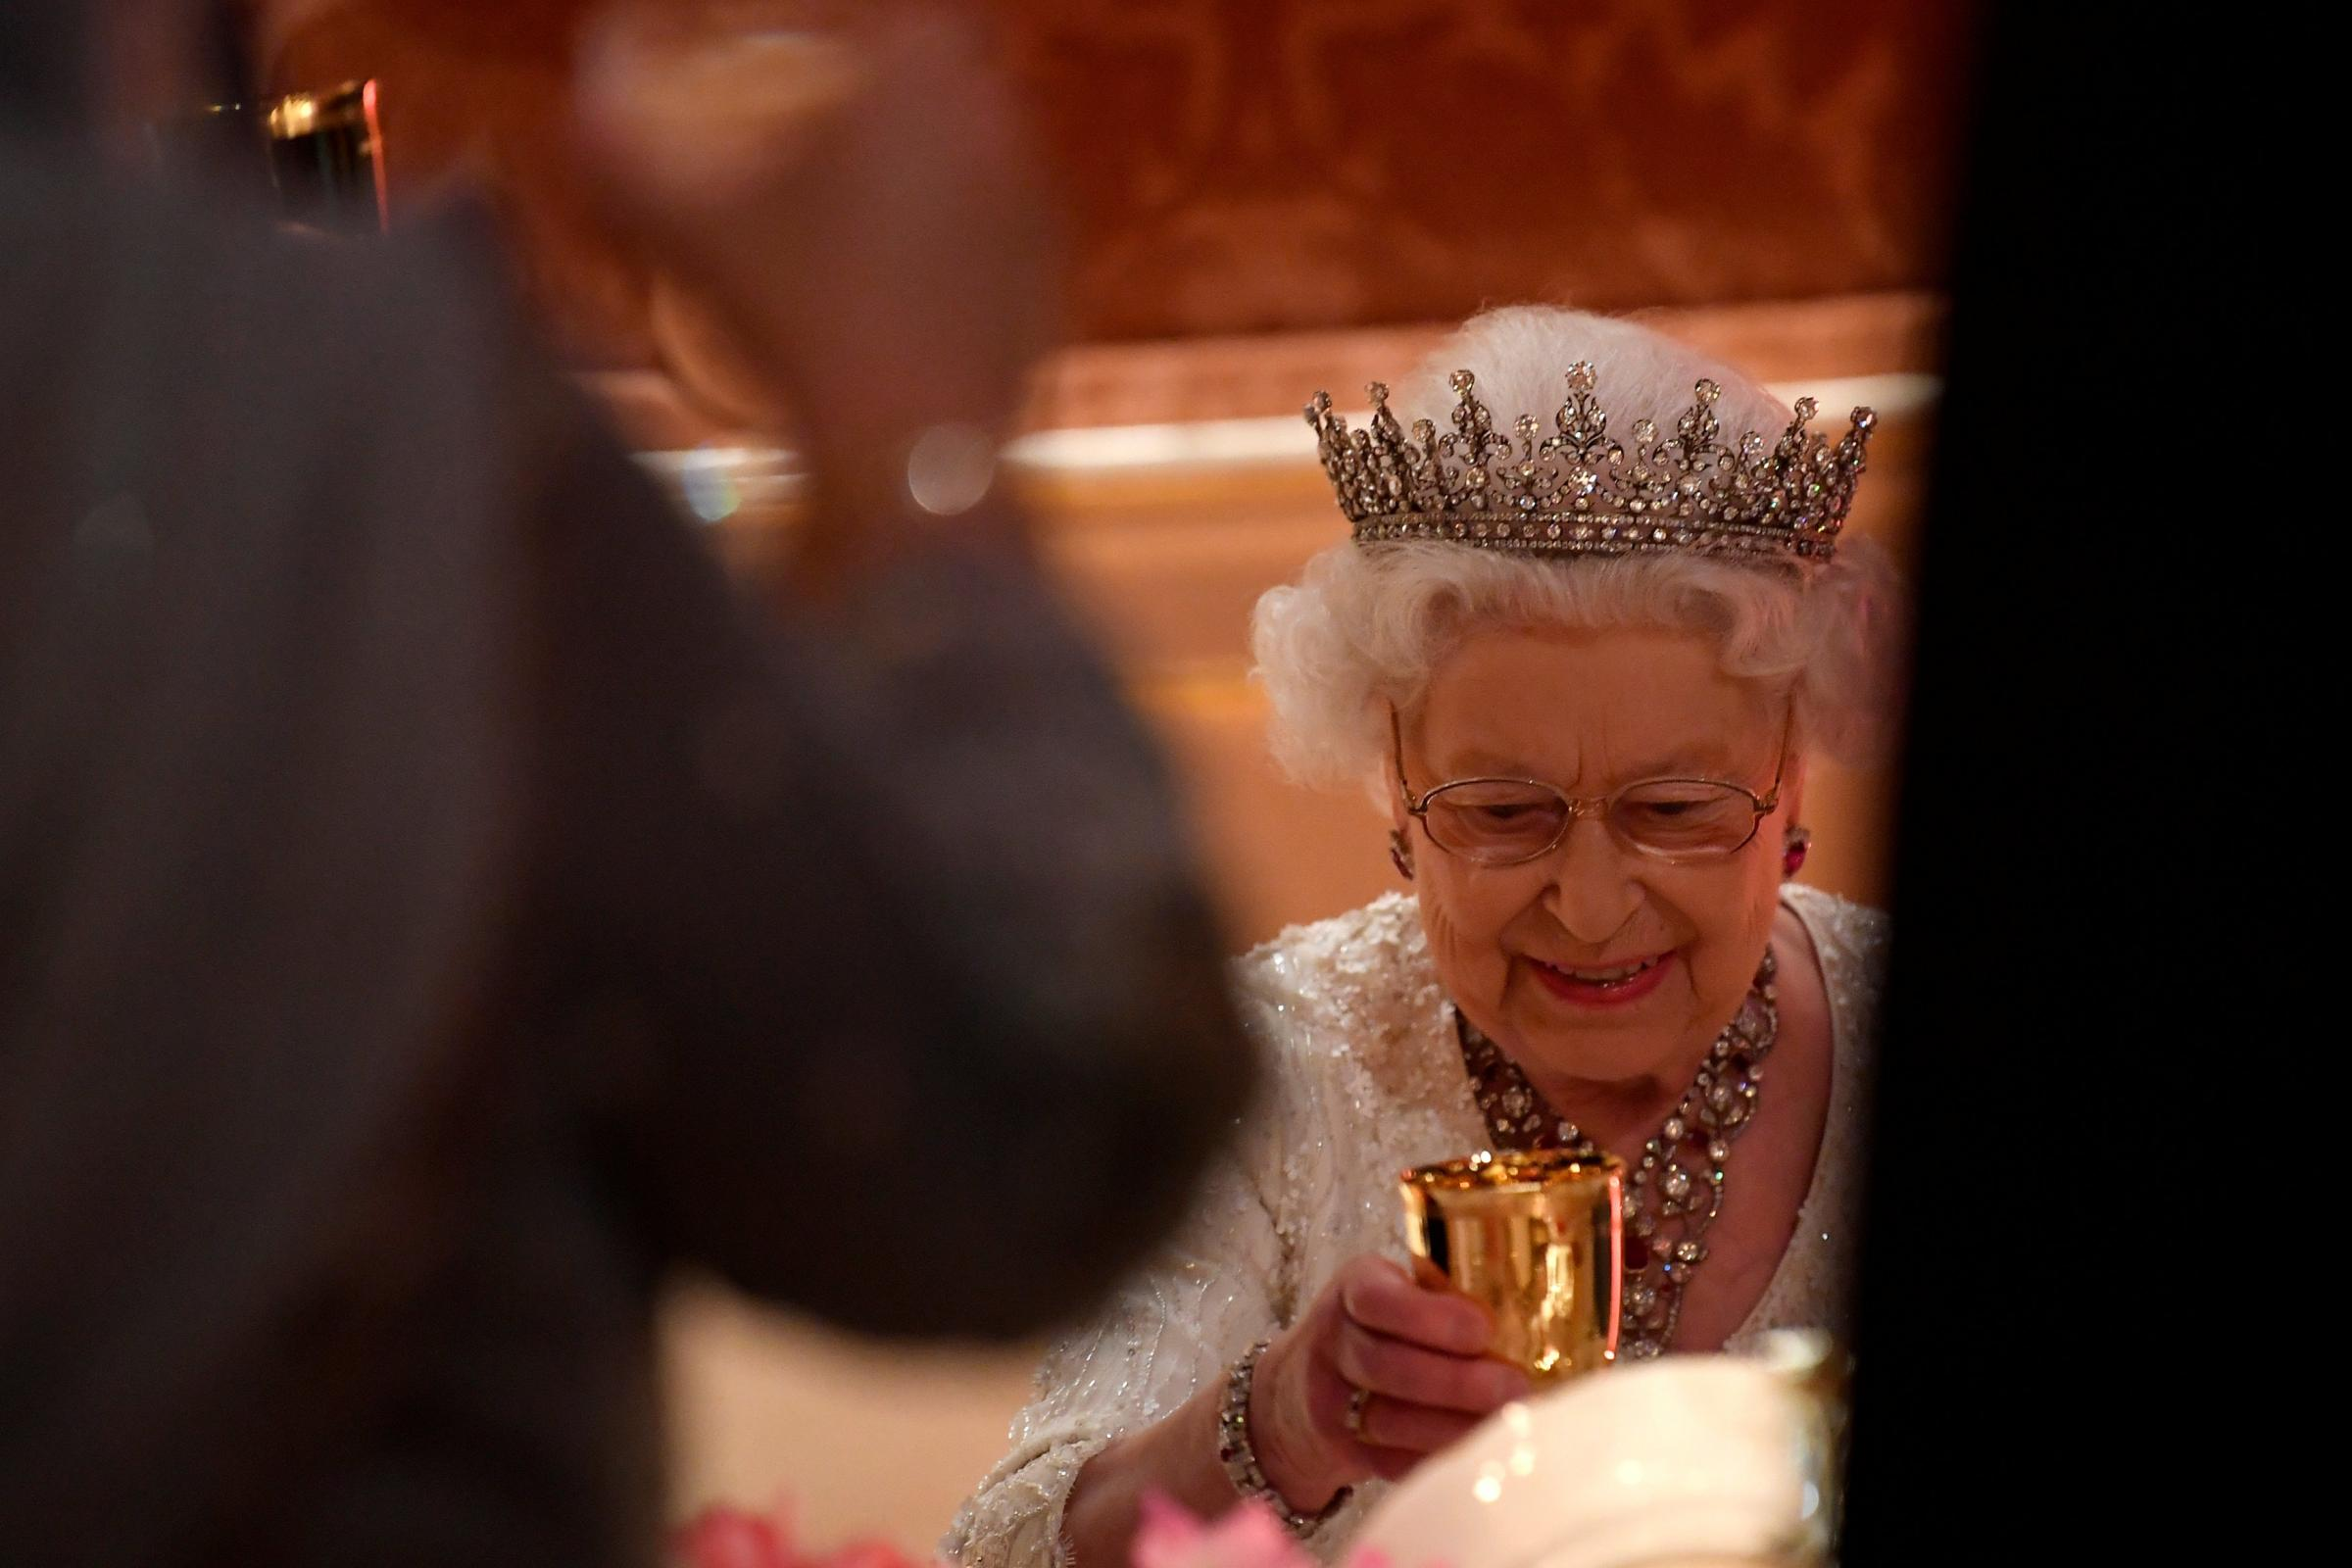 The Queen raises her glass for a toast (Toby Melville/PA)